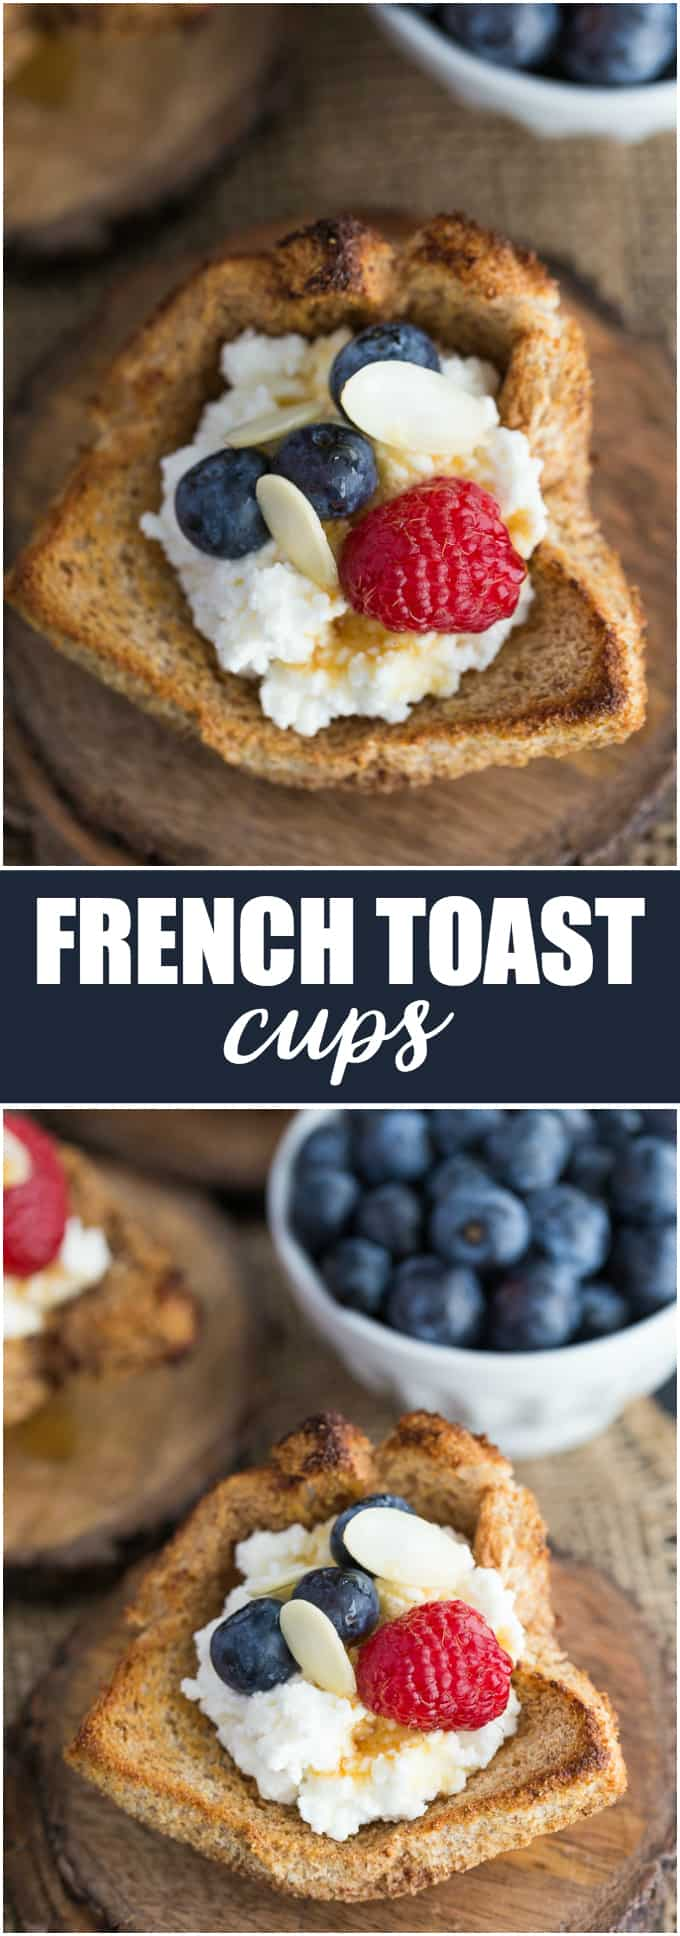 French Toast Cups - This easy breakfast recipe is the perfect sweet start to your day. Creamy ricotta with fresh berries and a drizzle of honey or maple syrup are a delicious breakfast treat.